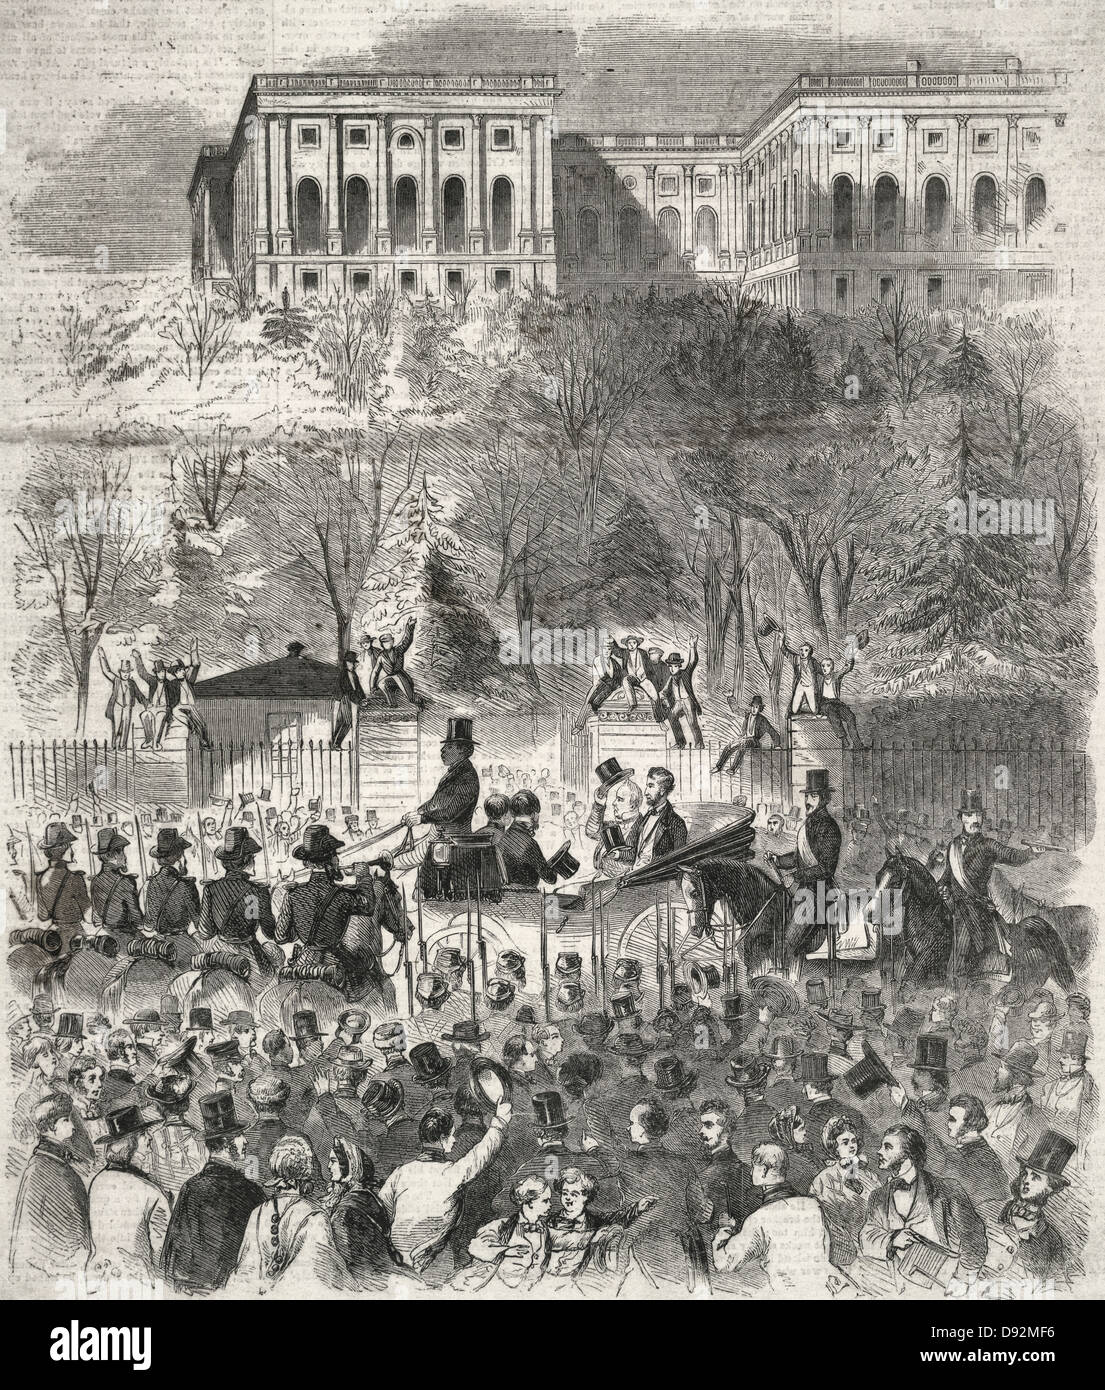 The inaugural procession at Washington passing the gate of the Capitol grounds - President-elect Lincoln and President - Stock Image